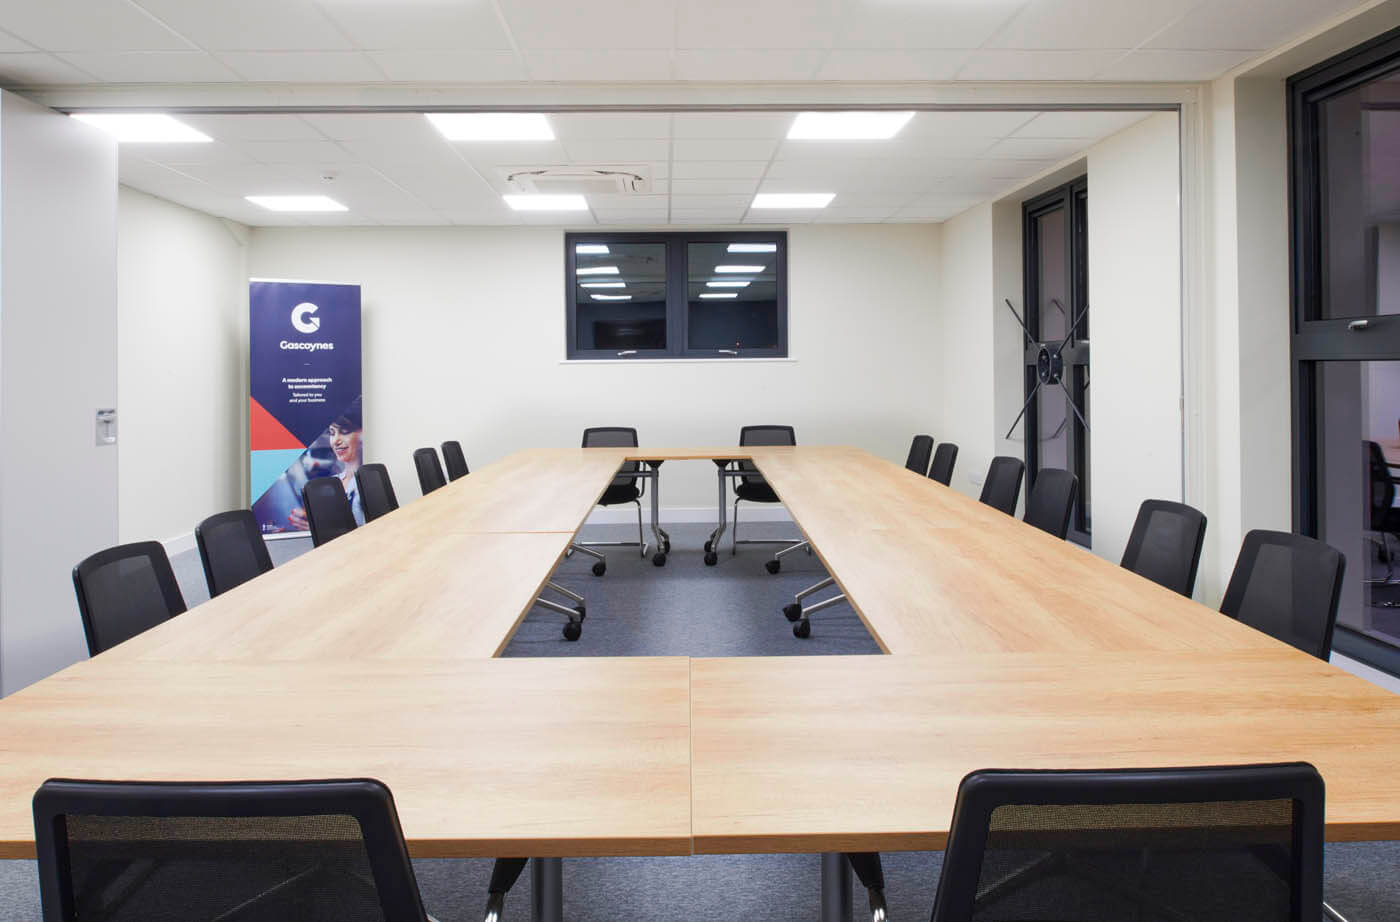 Gascoynes House - New Office Conference Room